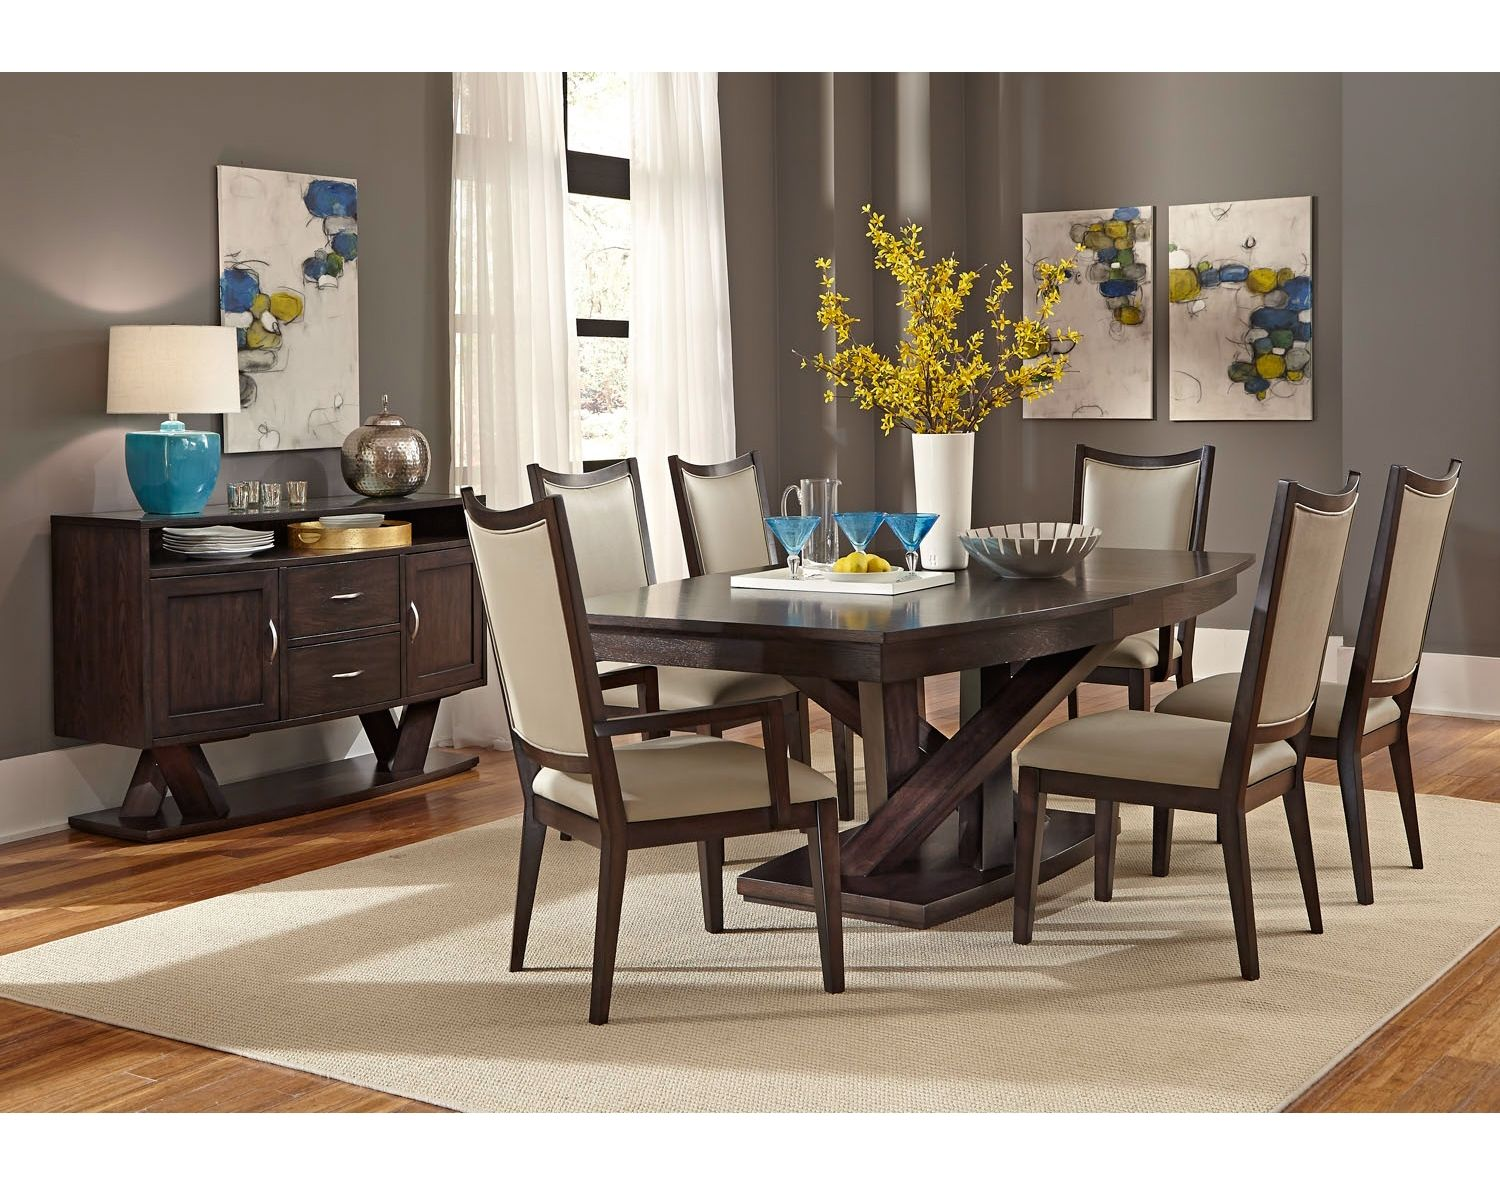 Addison Dining Room Collection